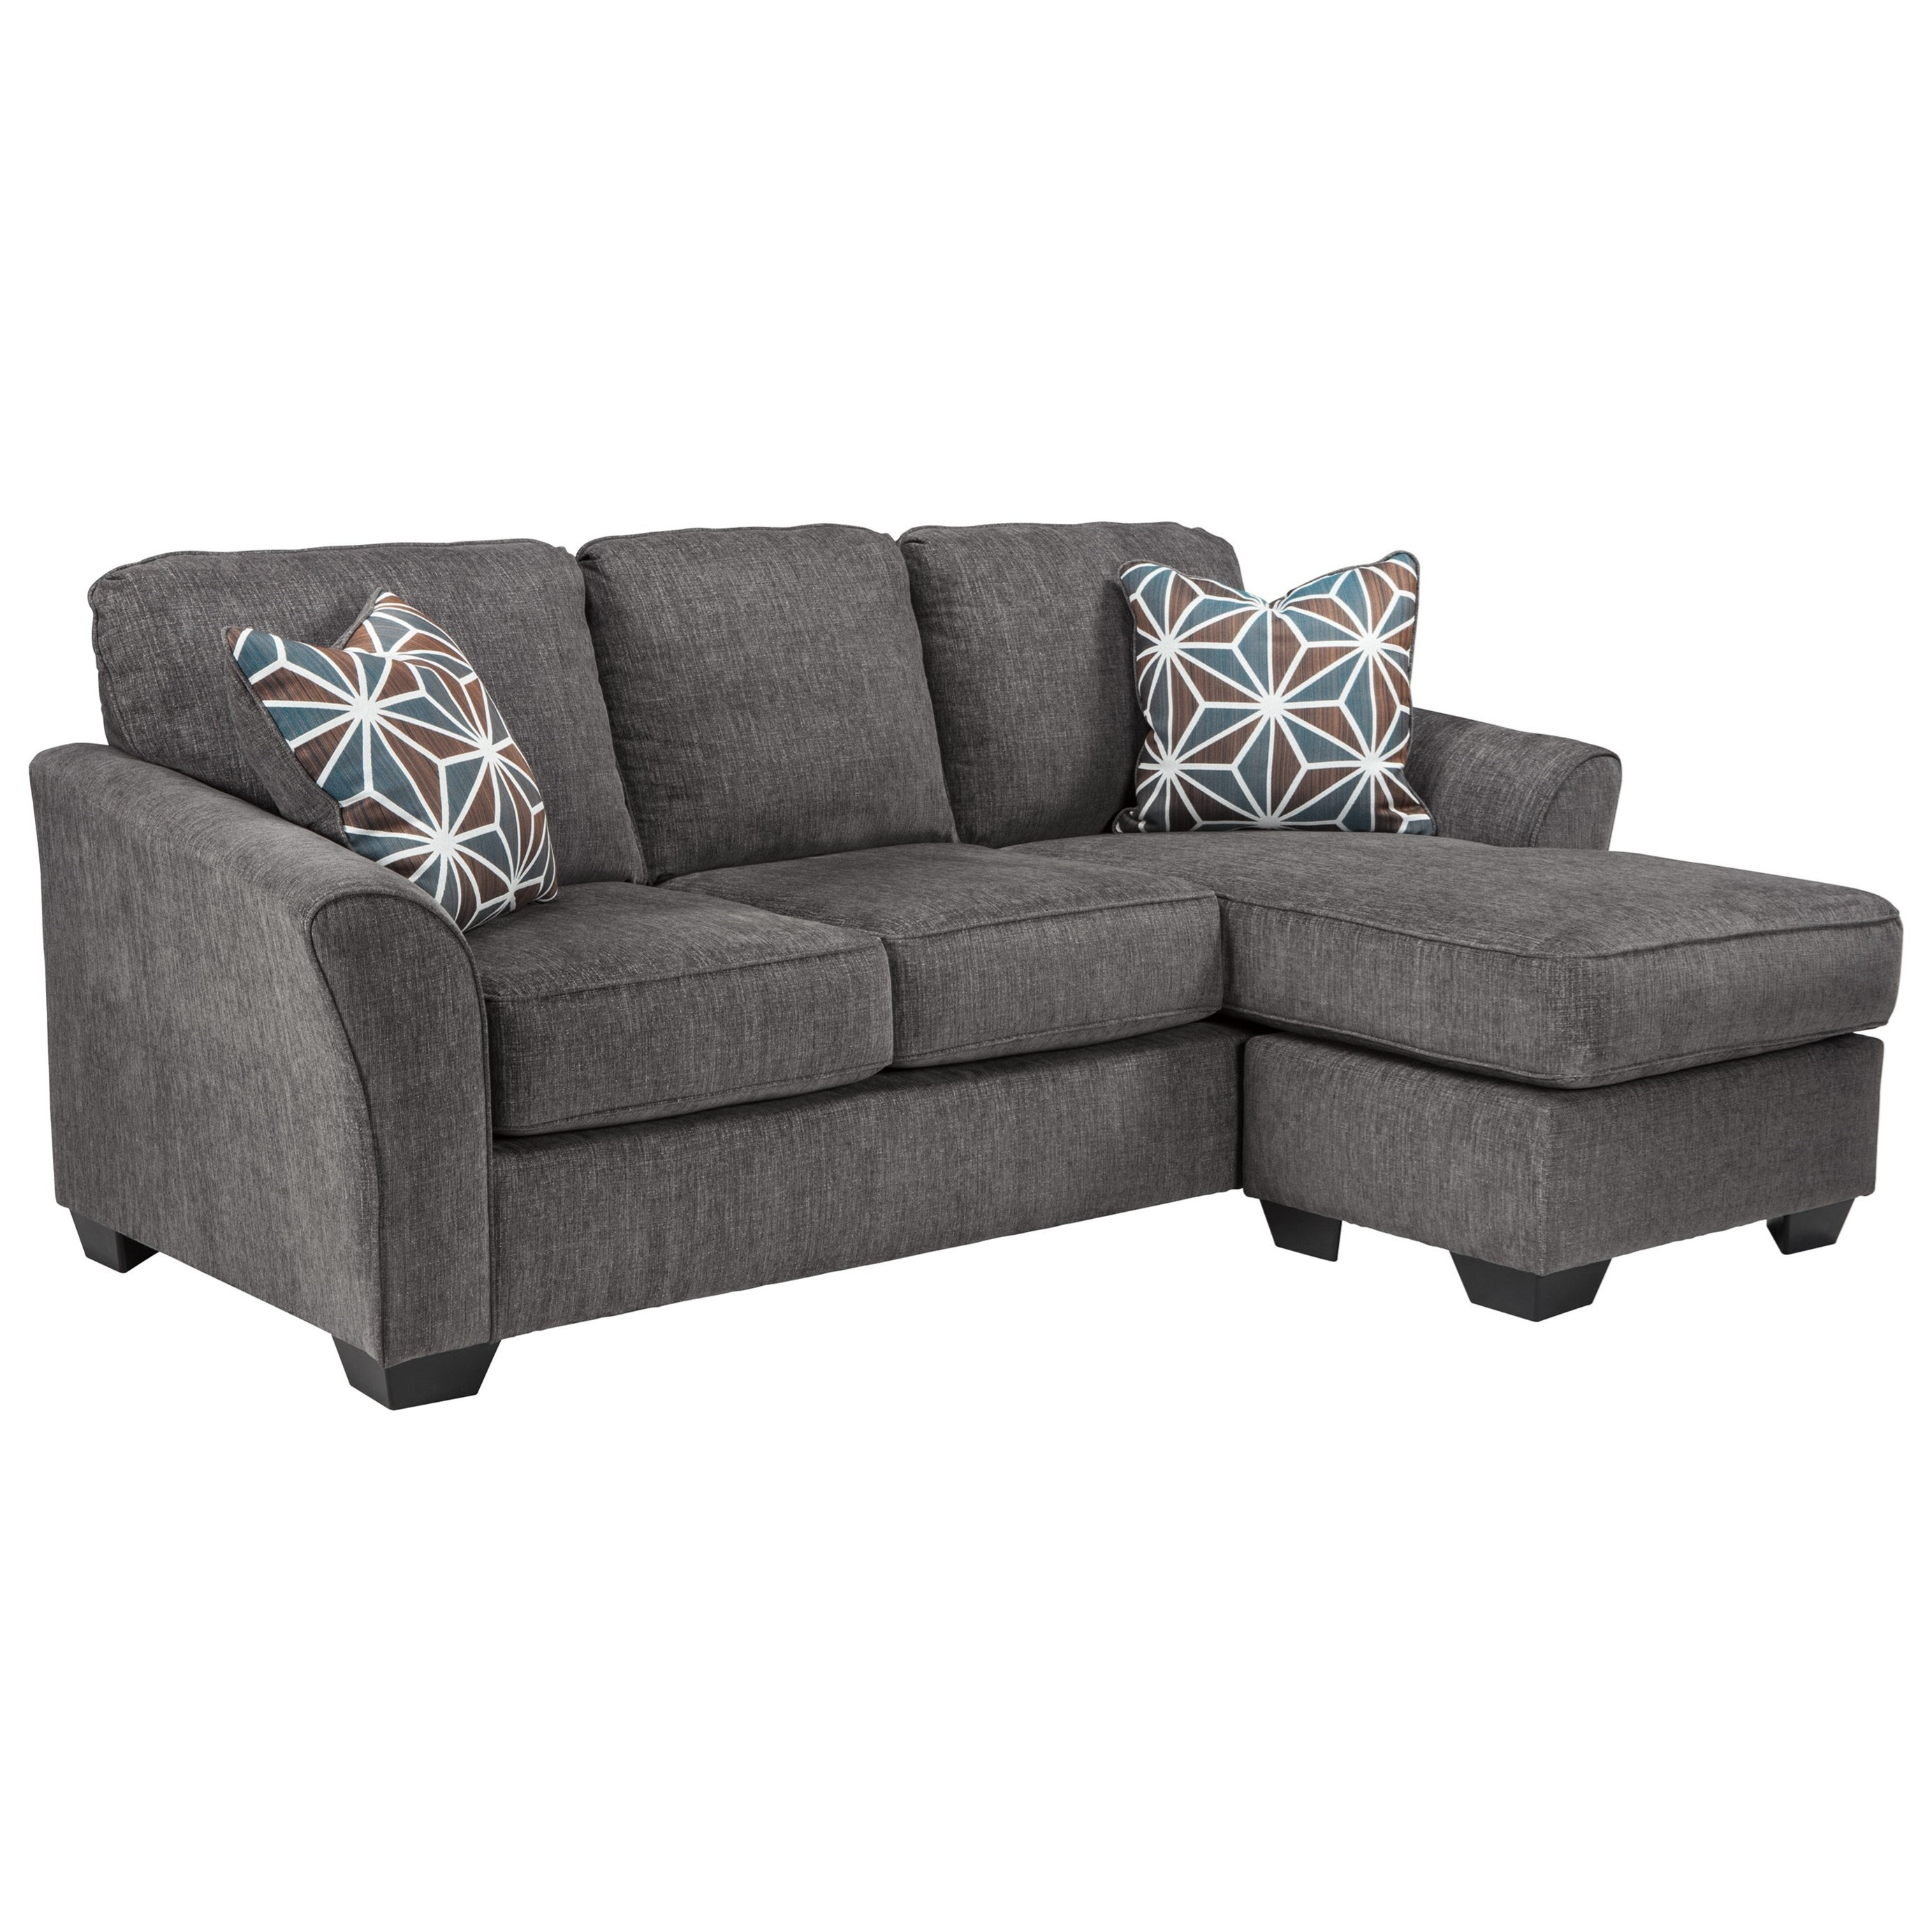 Britton Sofa Chaise